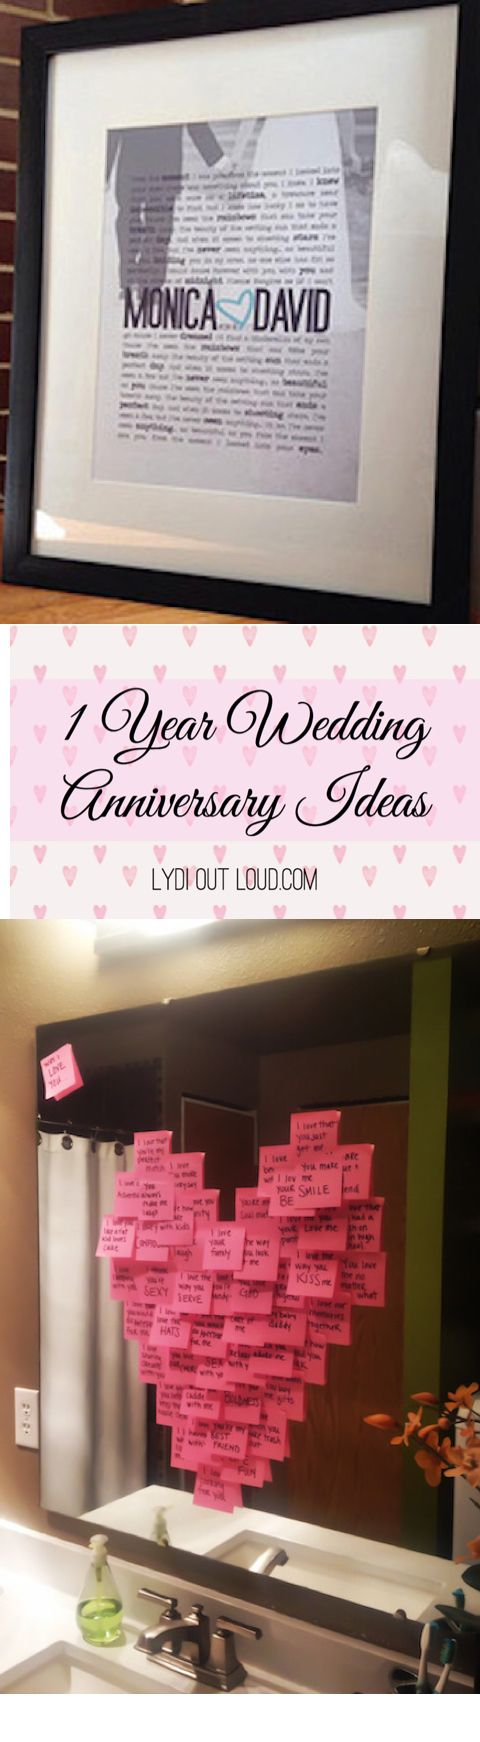 1 Year Anniversary Wedding Gift Ideas : anniversary gift ideas wedding gift ideas diy paper anniversary gift ...